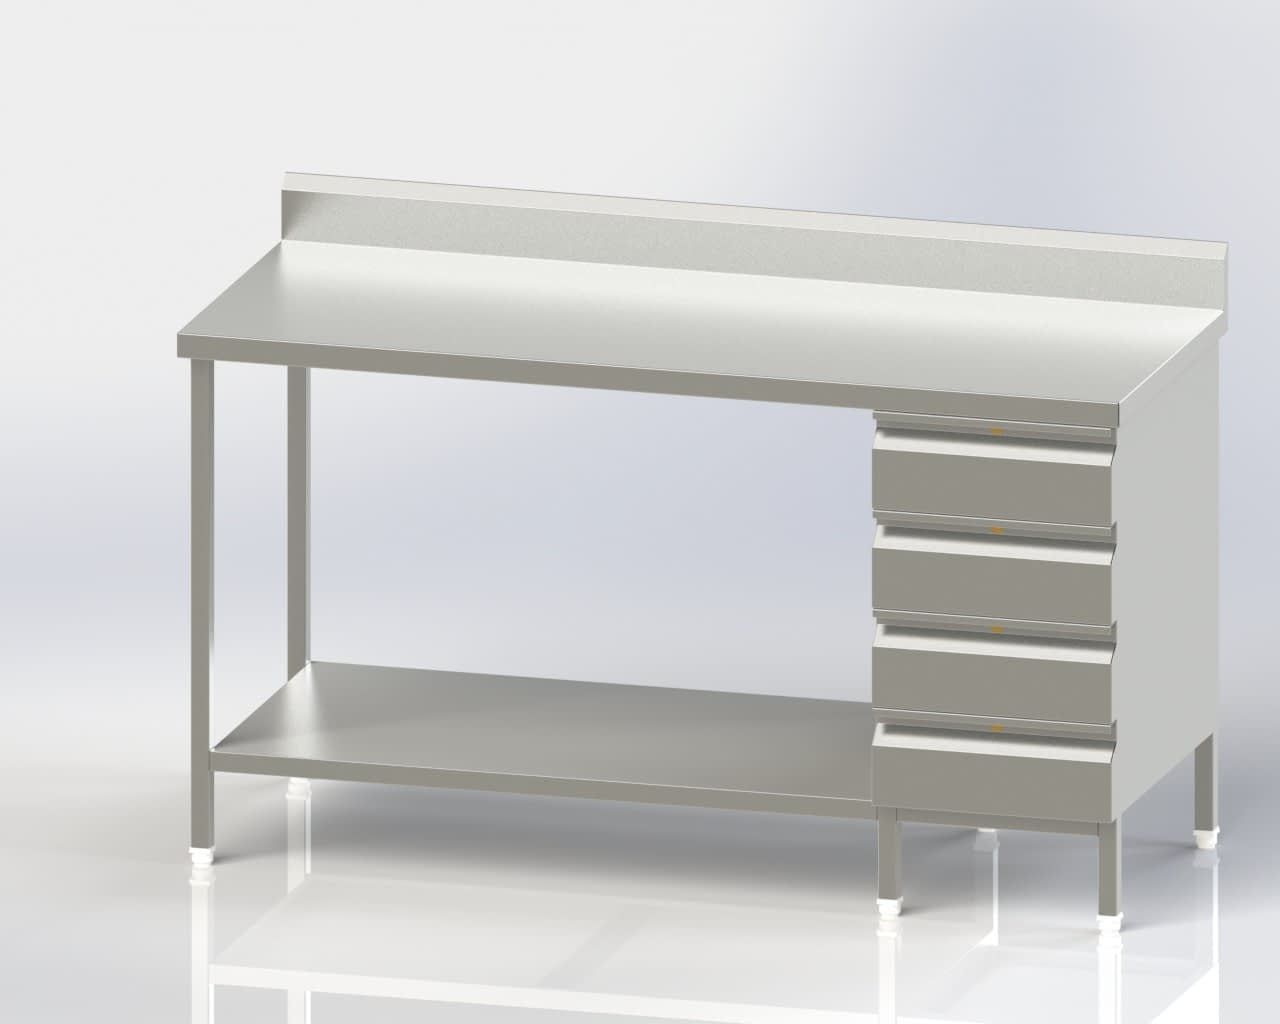 Work Table with 4 Drawer Lower Shelf